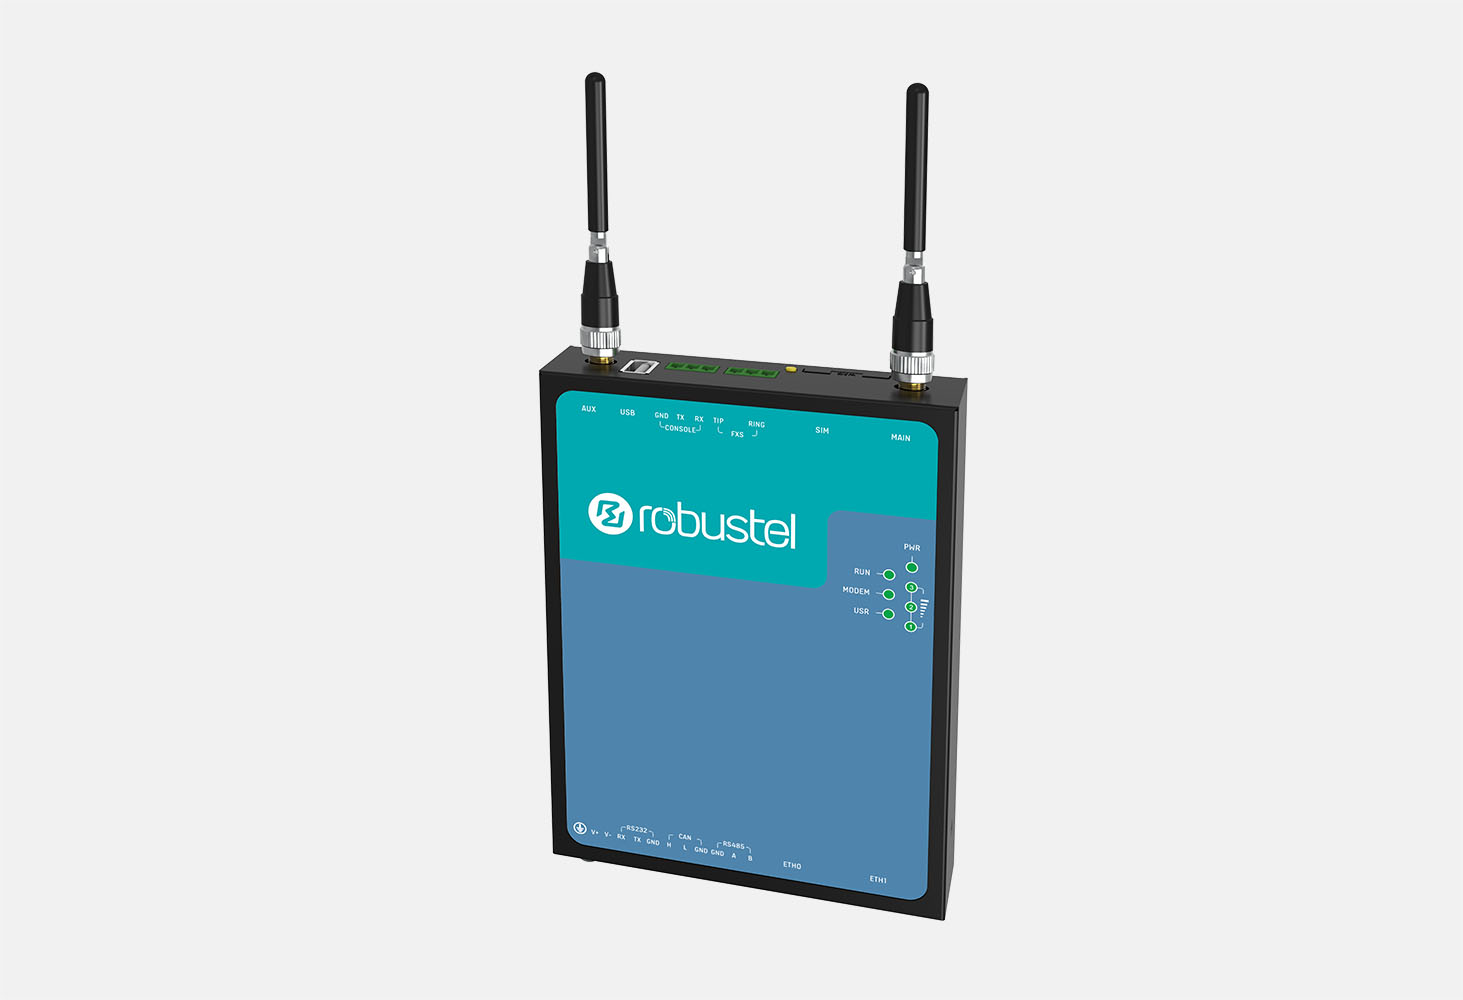 Robustel R3010 Industrial Cellular IoT Gateway.